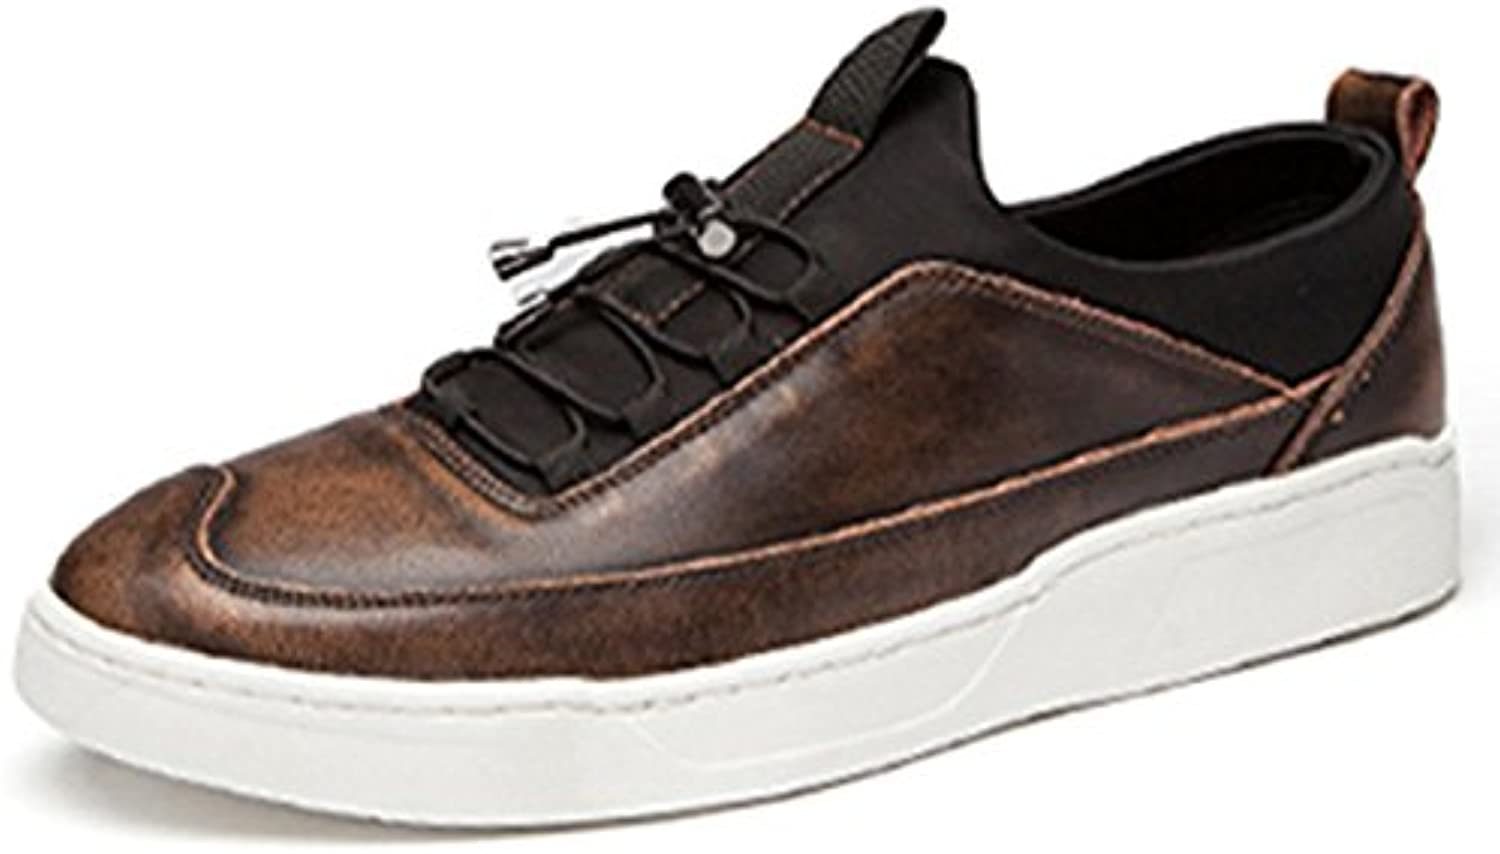 YIXINY B02 Spring And Autumn British Style Light And Breathable Fashion Outdoor Casual shoes Men's shoes (color   Ancient copper, Size   EU42 UK8.5 CN43)